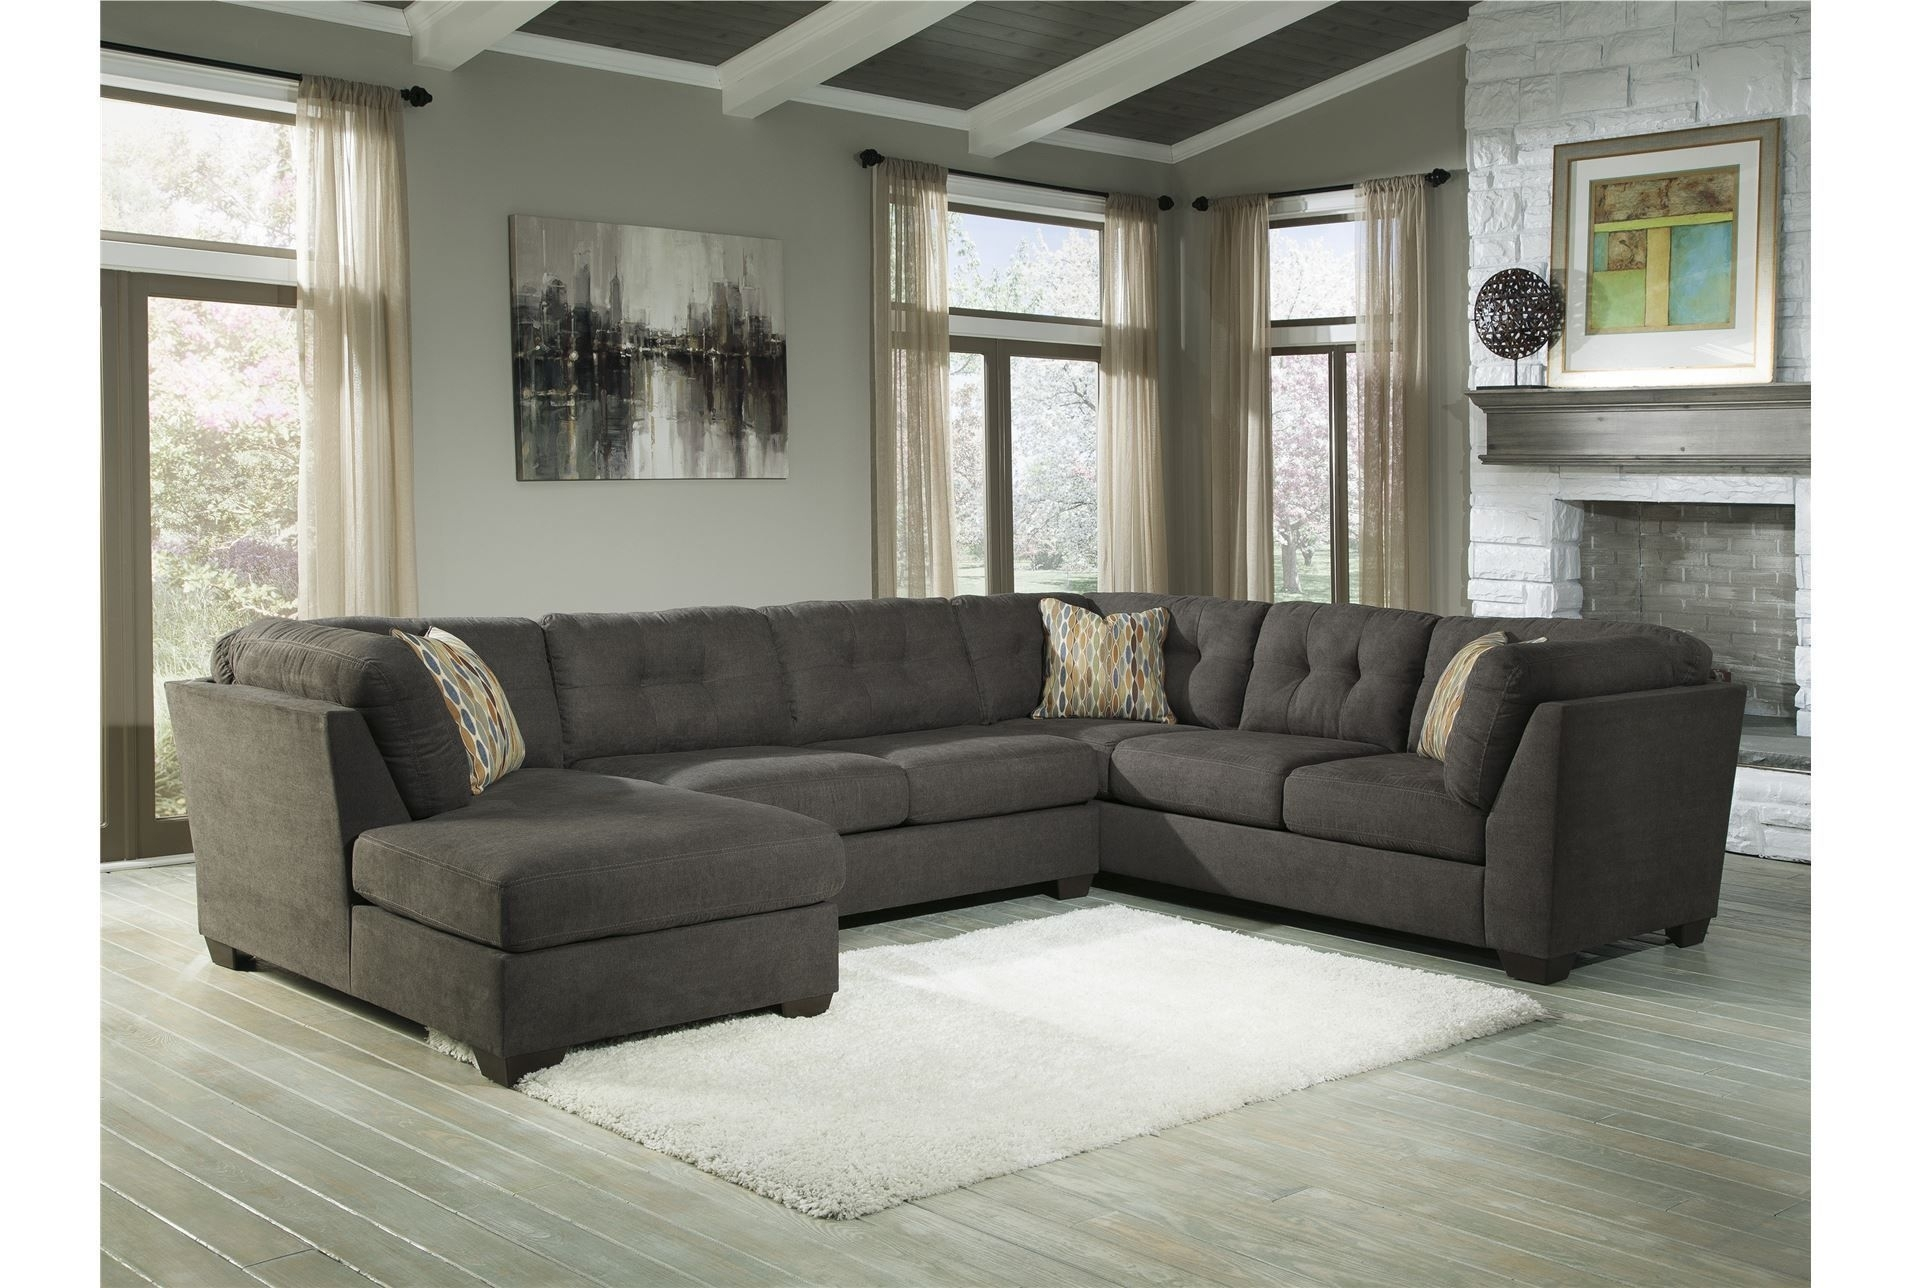 Delta City Steel 3 Piece Sectional W/laf Chaise Living Room Option With Regard To Haven Blue Steel 3 Piece Sectionals (View 10 of 25)